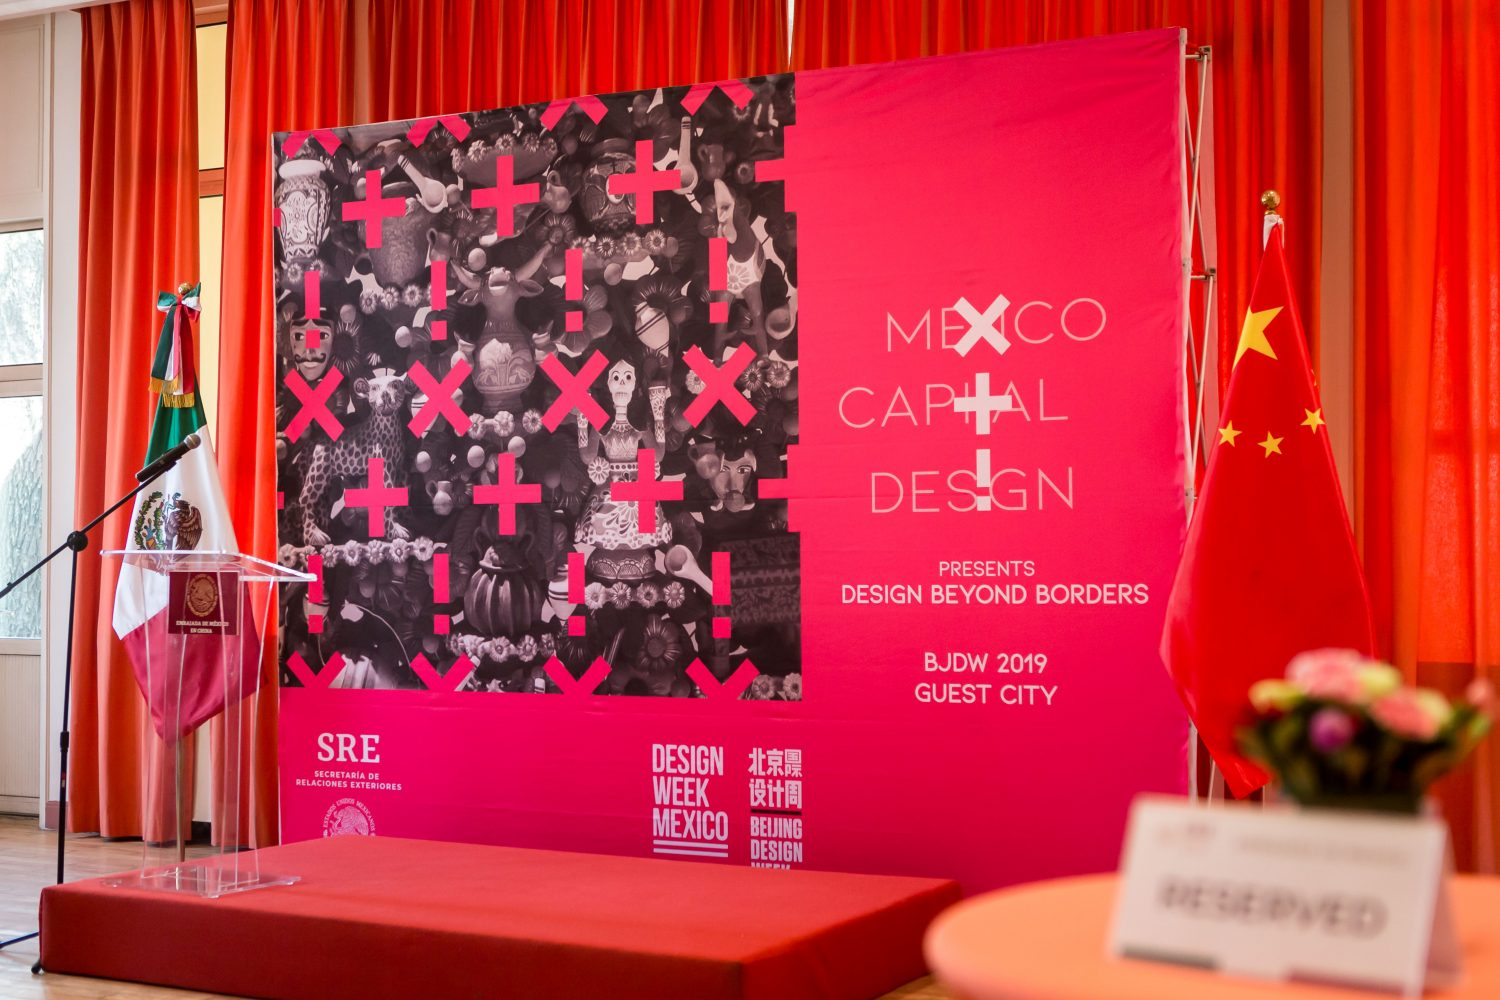 Beijing Design Week 2019 Event Guide beijing design week 2019 event guide BEIJING DESIGN WEEK 2019 EVENT GUIDE Design Beyond Borders Official Launch 2